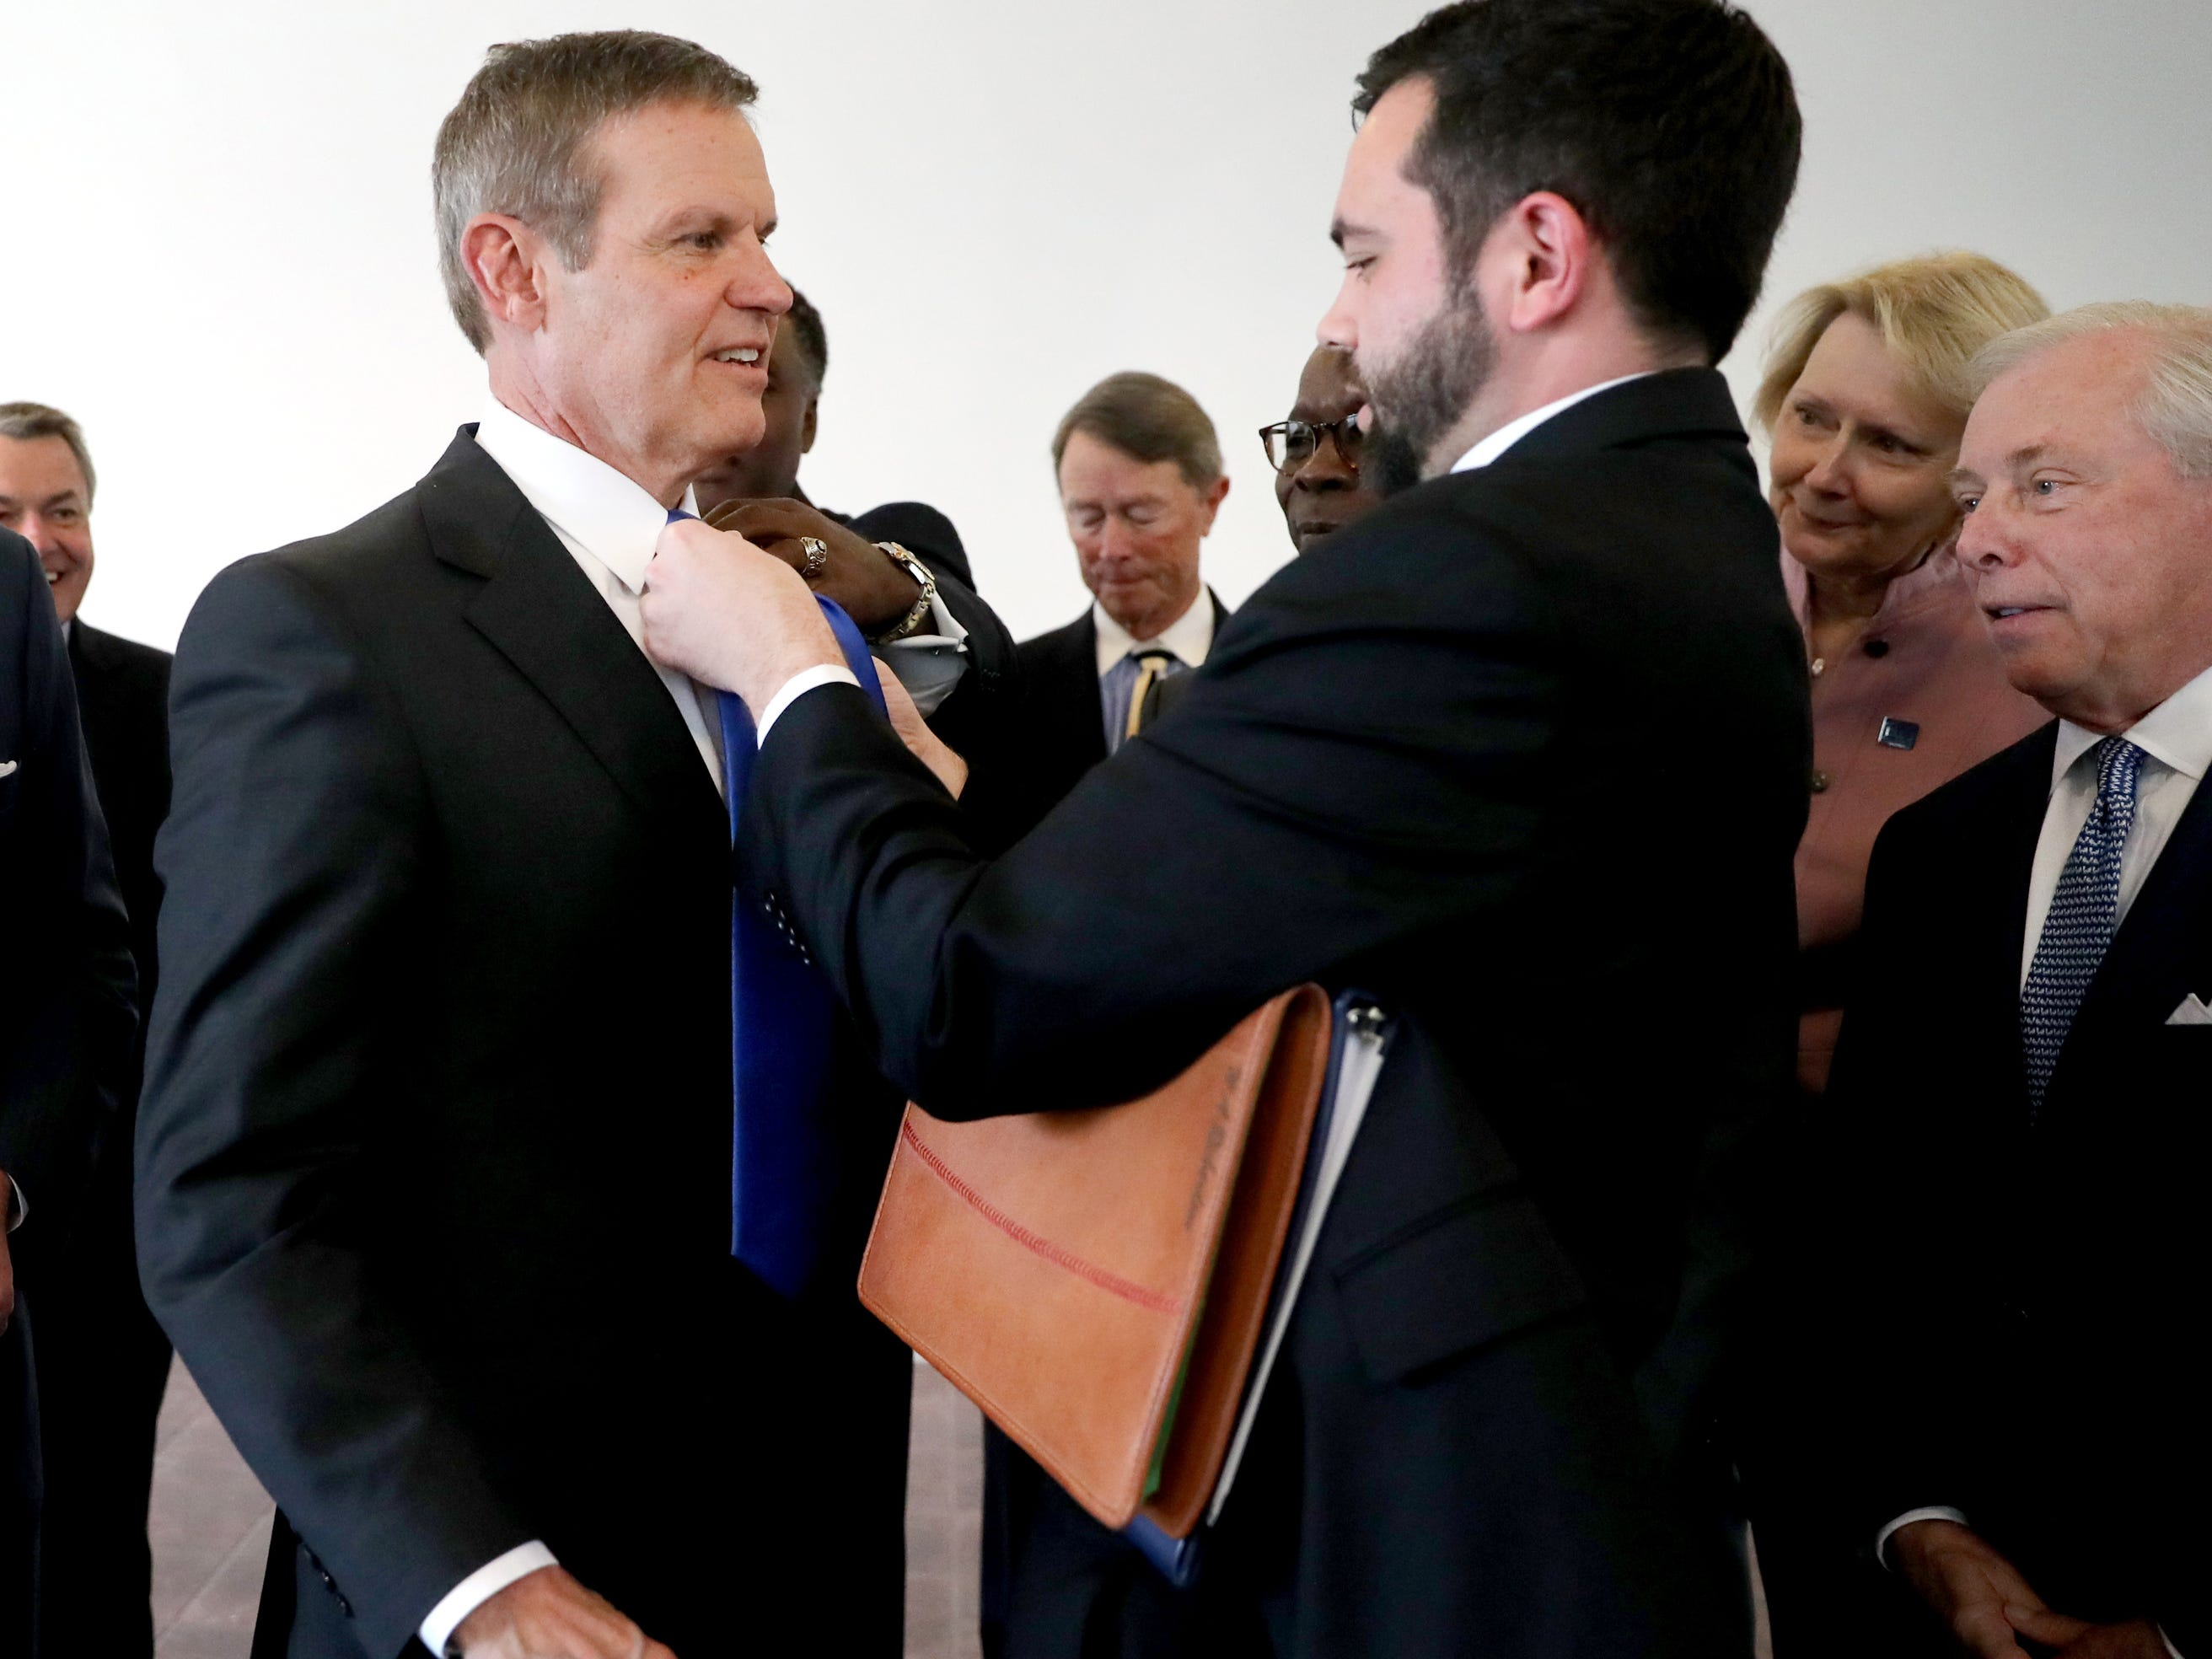 Alec Richardson, a personal Aide to the Governor changes out Tennessee Governor Bill Lee's tie to an MTSU blue tie before he has his picture taken with the MTSU board of trustees , on Wednesday April 3, 2019.  Lee also spoke at MTSU's program recognizing the Siemens' grant to MTSU's Mechatronics Engineering program, on Wednesday April 3, 2019.